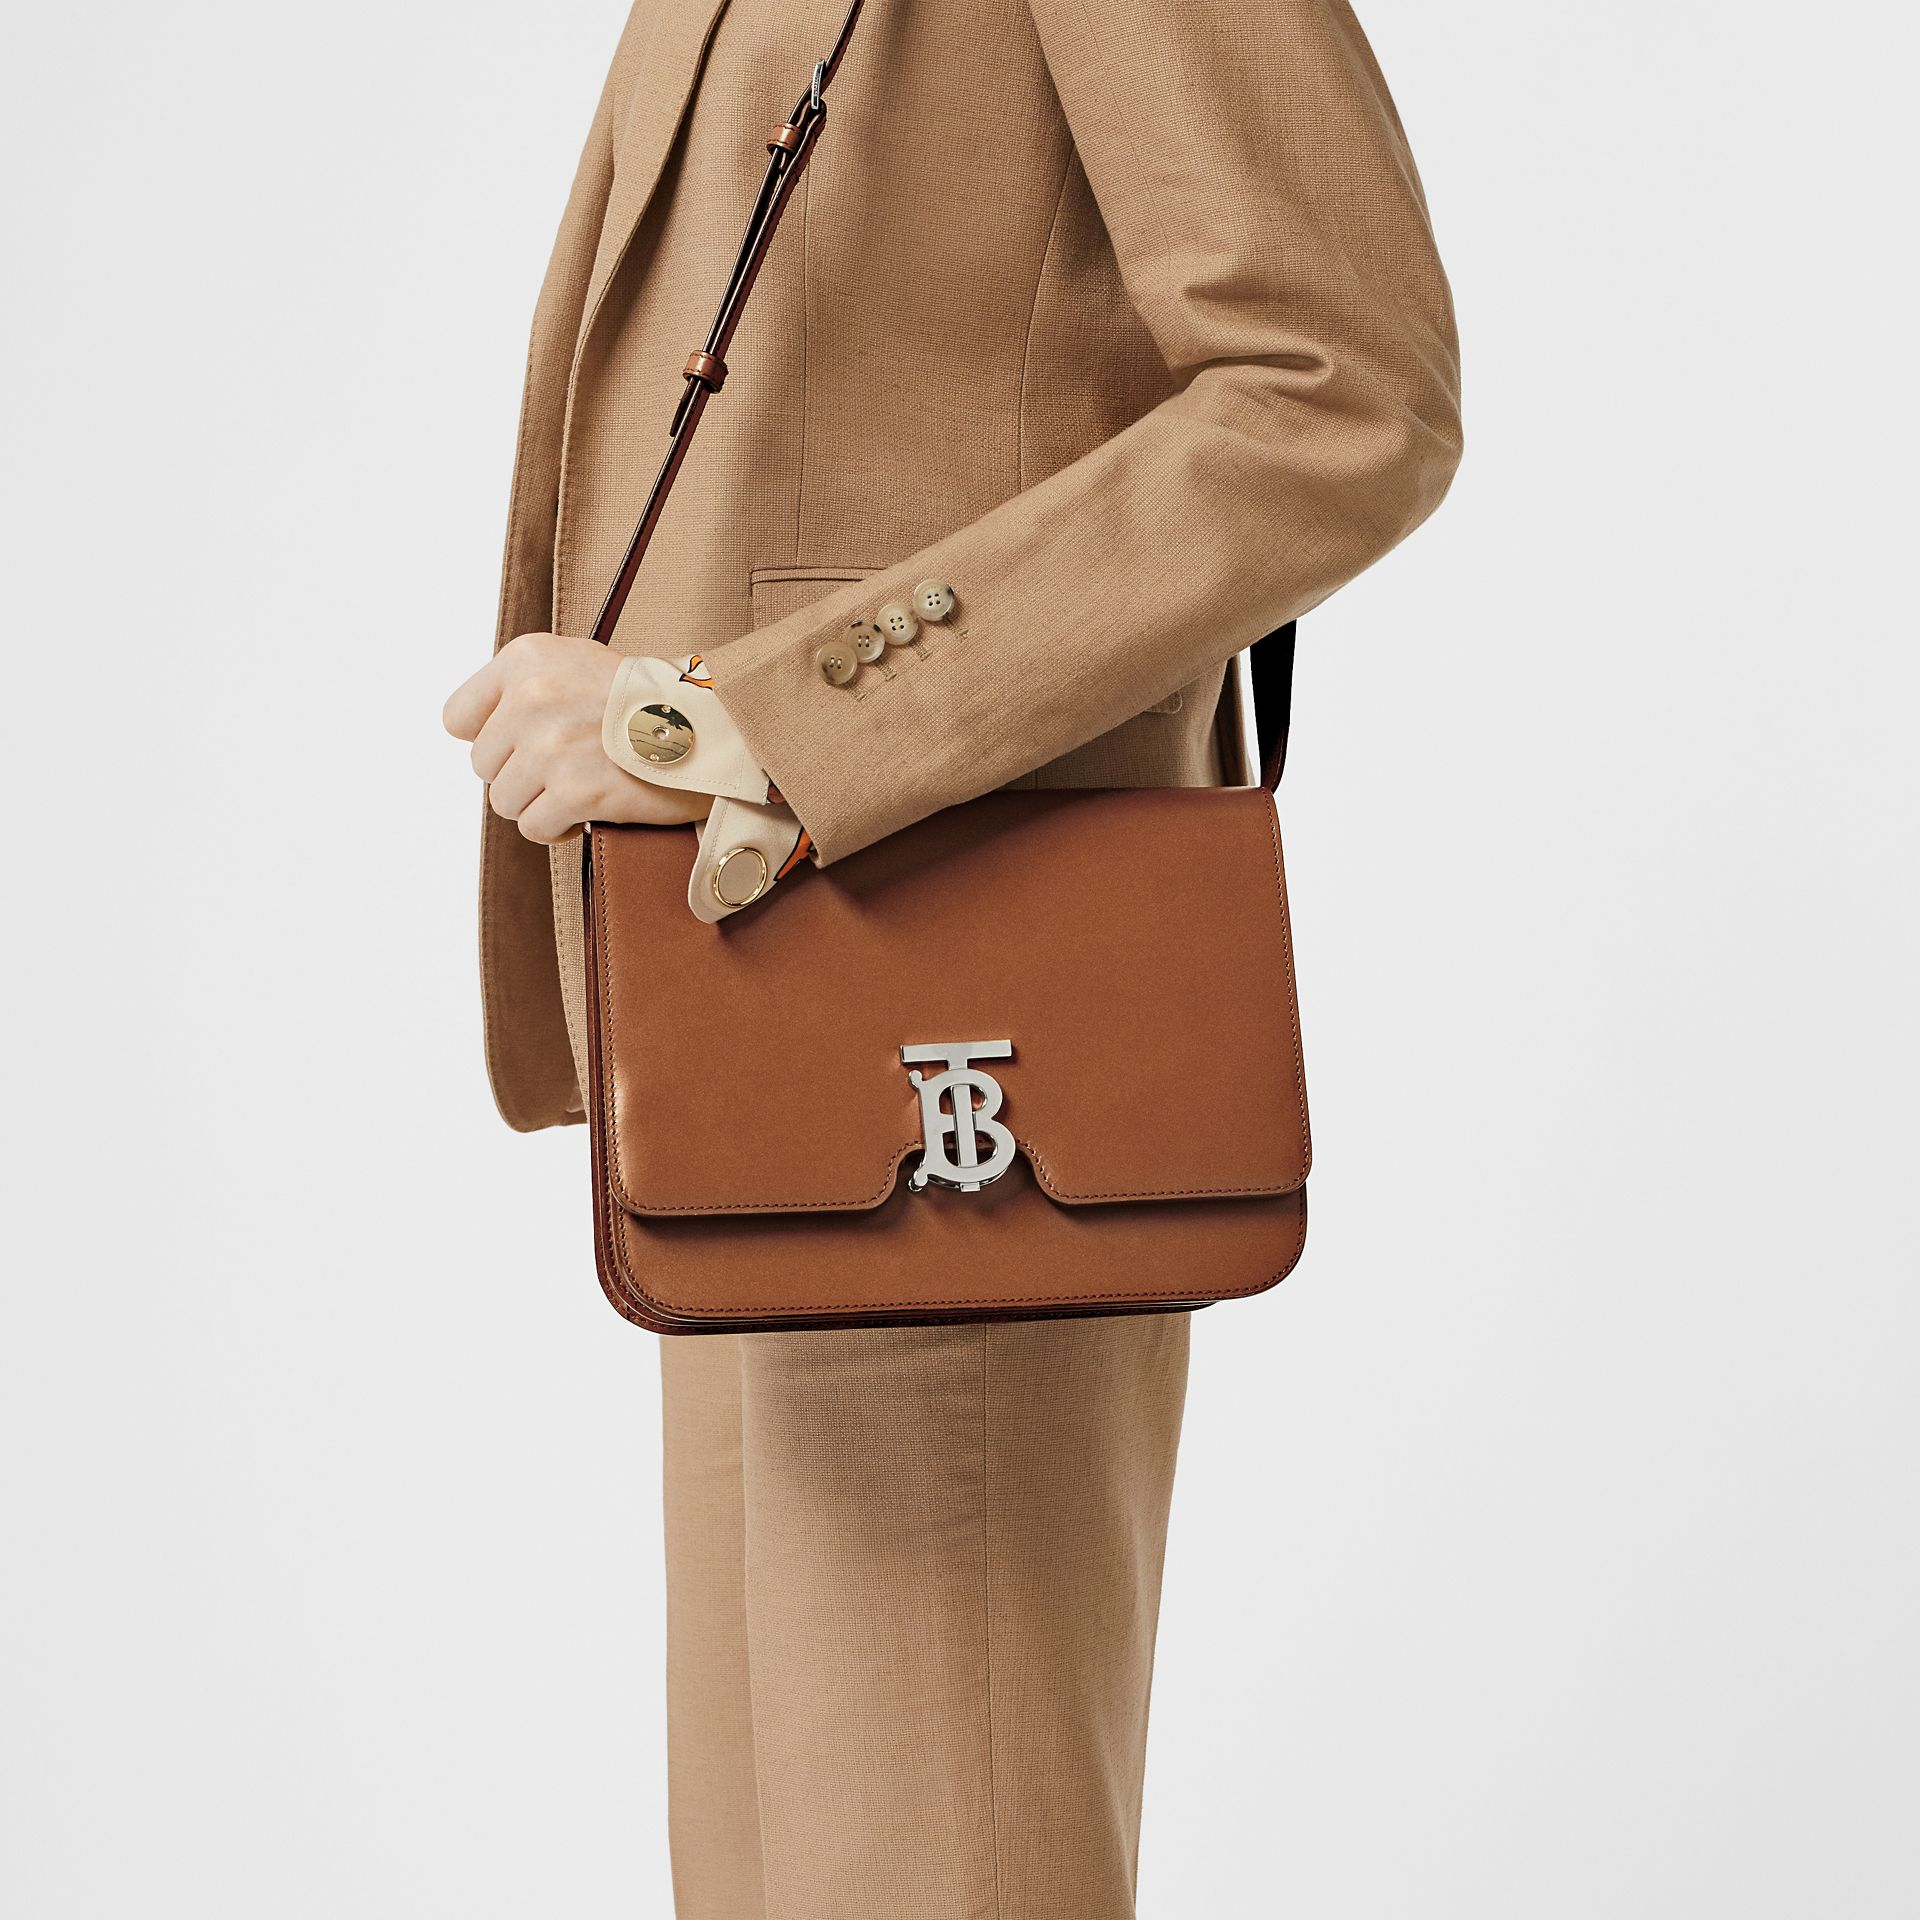 Medium Leather TB Bag in Malt Brown - Women | Burberry United States - gallery image 2